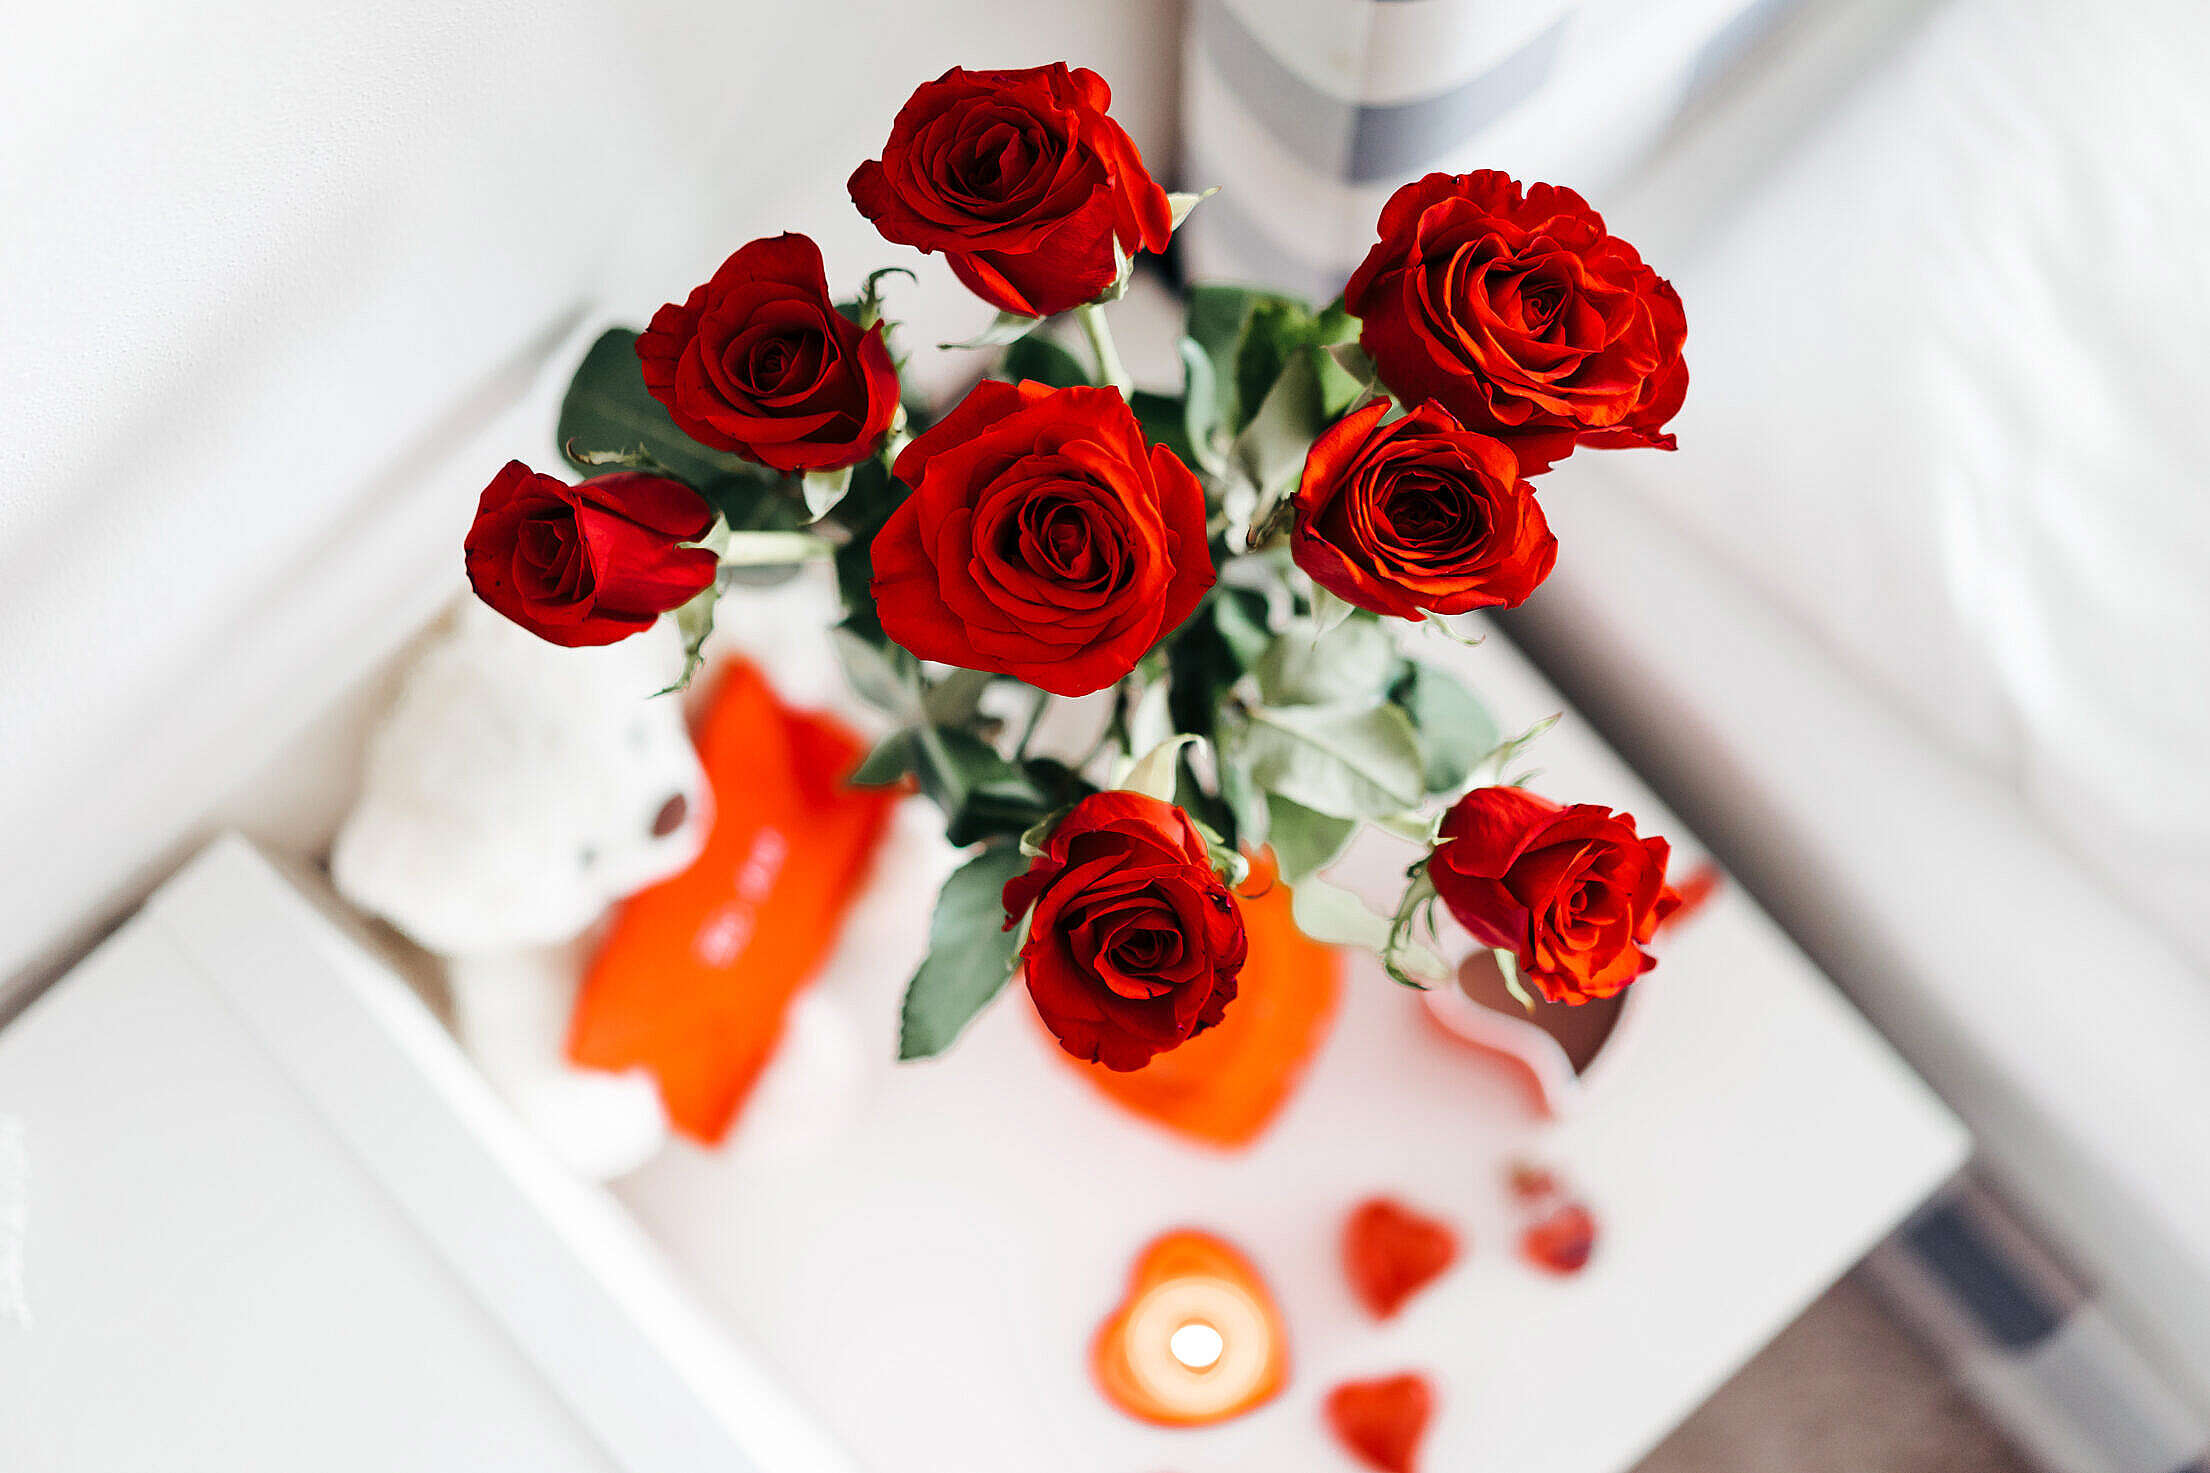 Roses for Valentine's Day Free Stock Photo